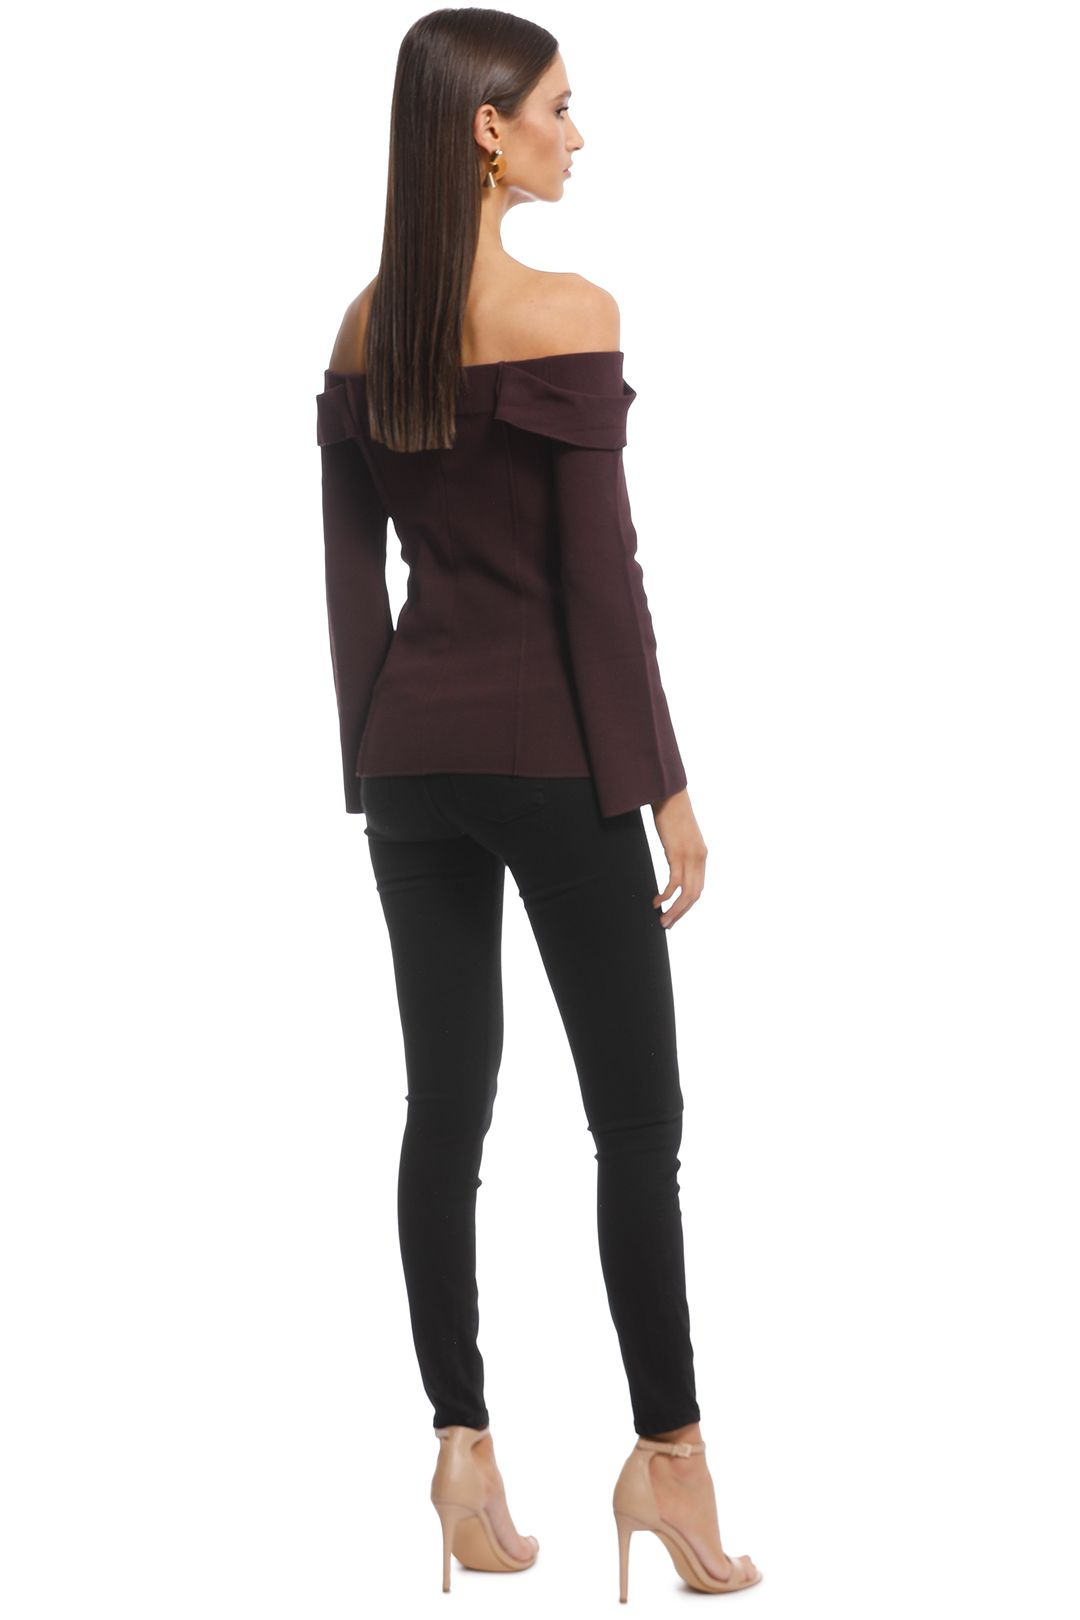 Camilla and Marc - Carole Knit Top - Burgundy - Back